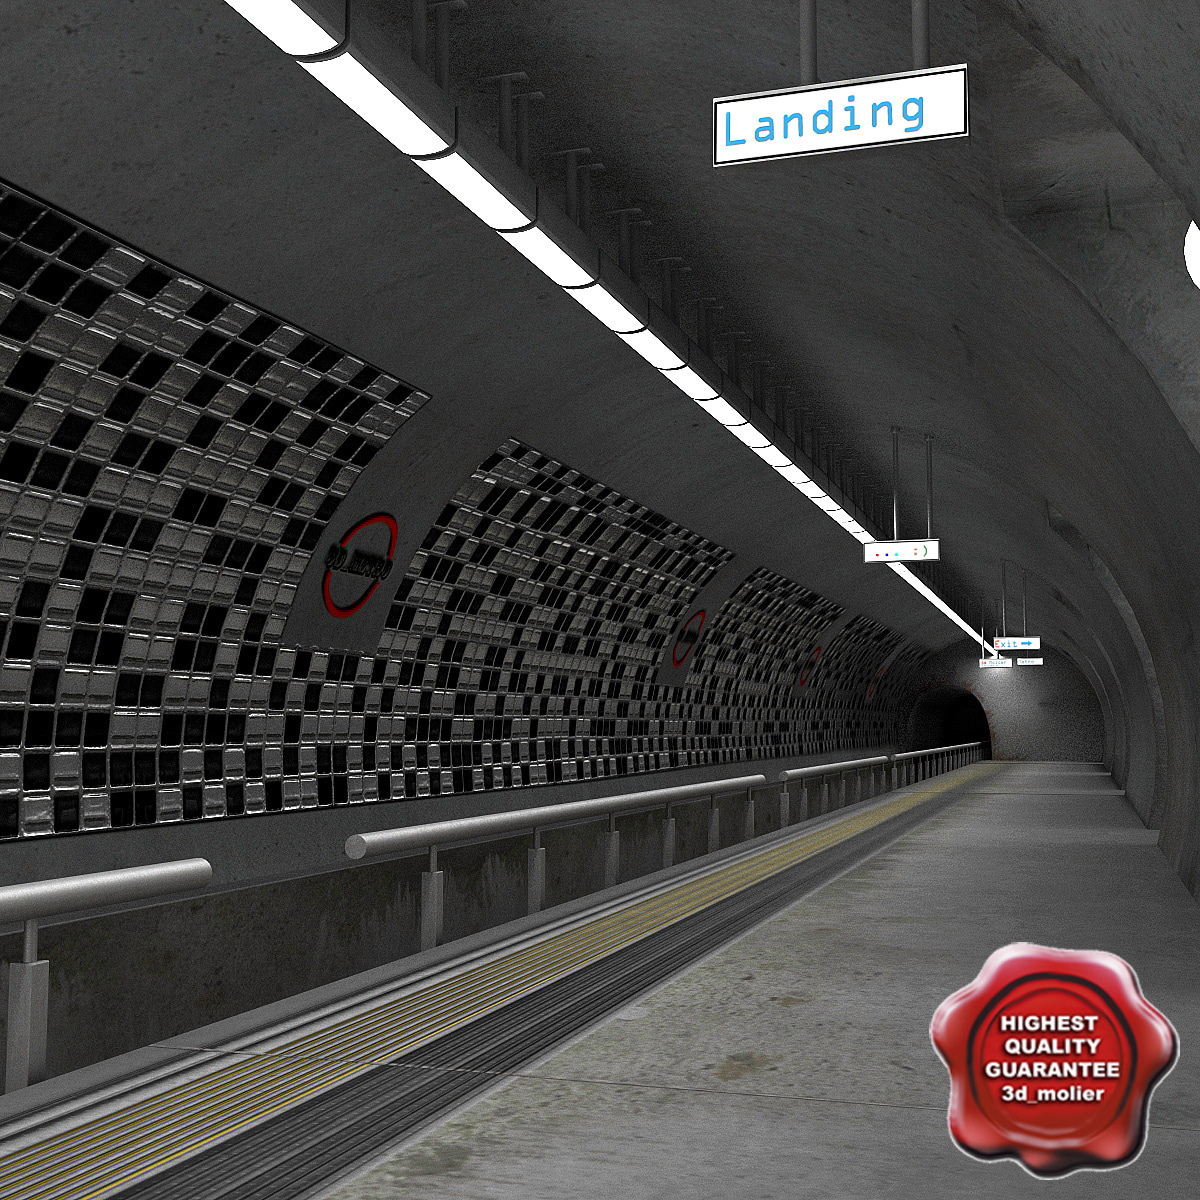 Subway_Station_00.jpg